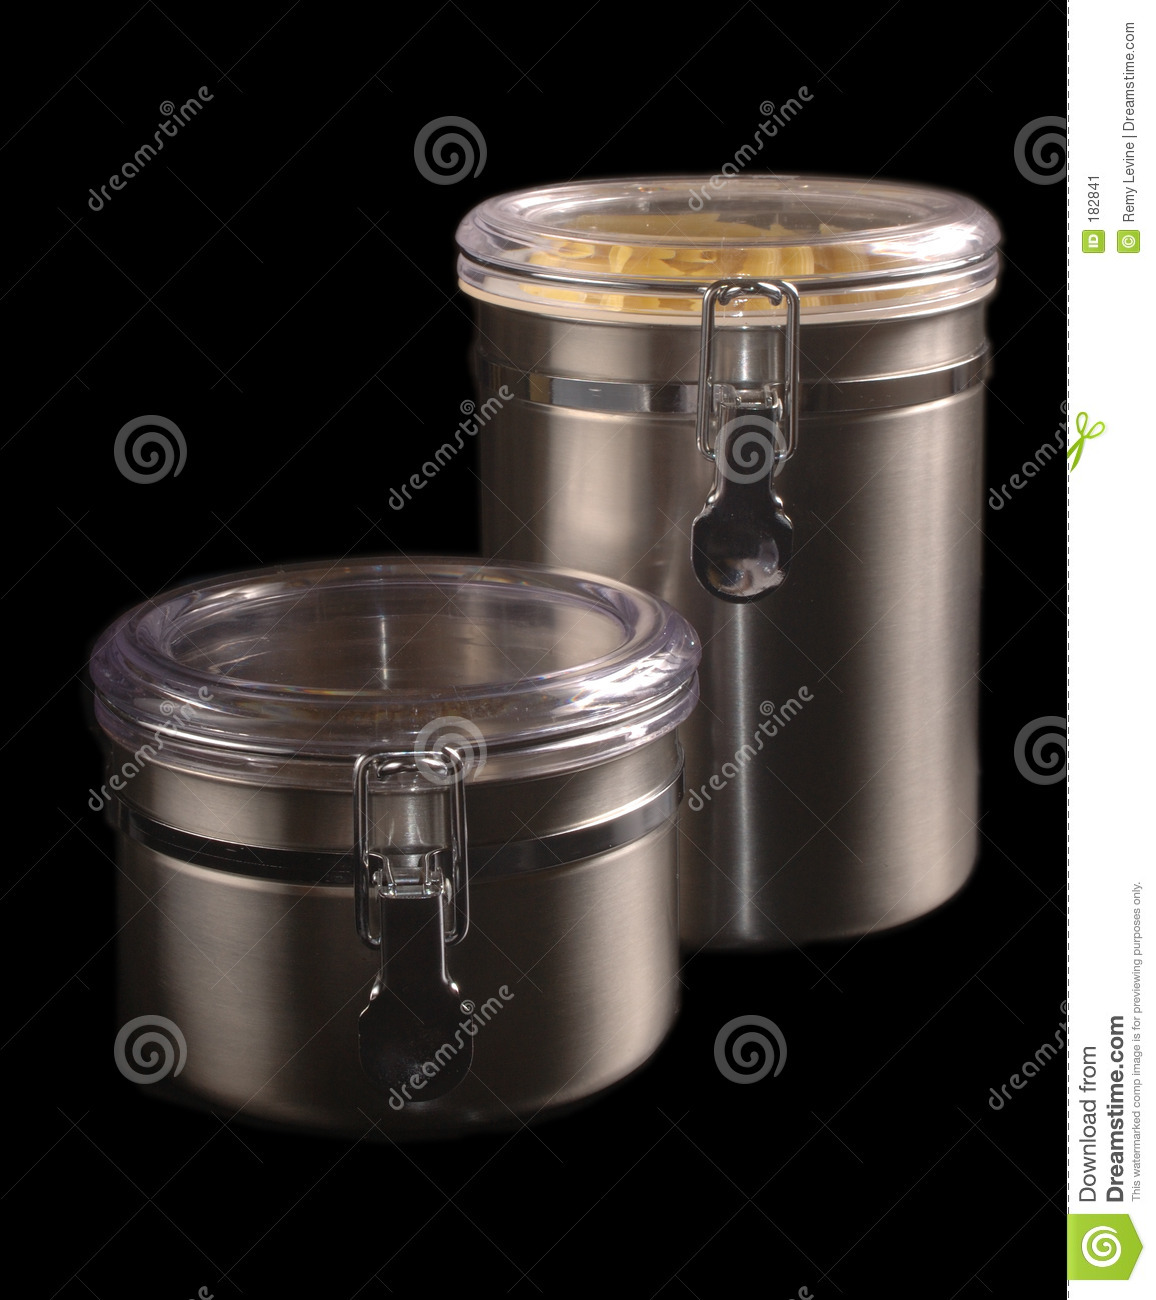 stainless steel storage containers for kitchen stainless steel kitchen containers stock image image of 9420